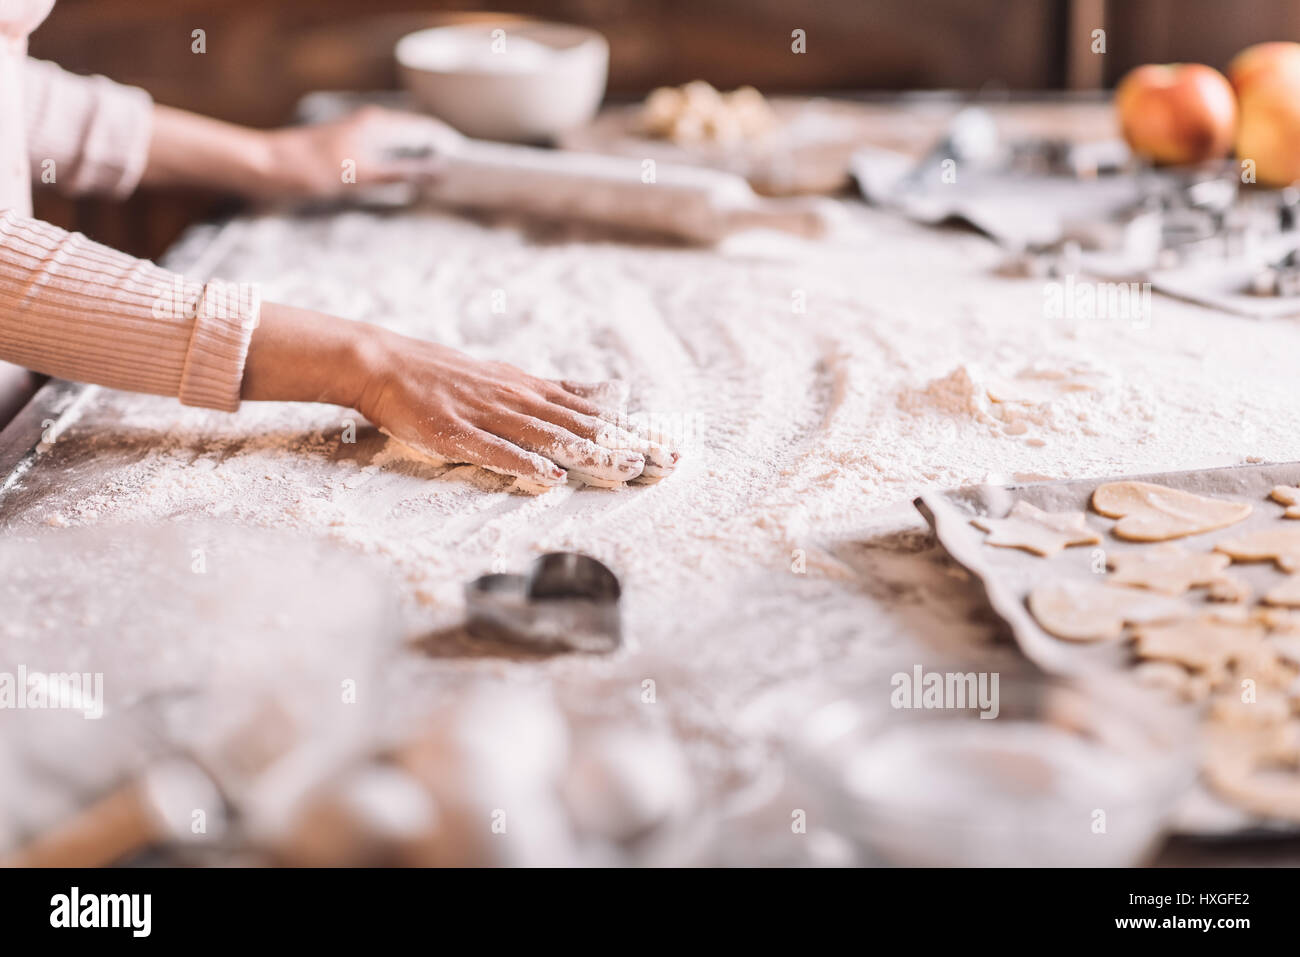 'Partial view of woman kneading dough at kitchen table - Stock Image